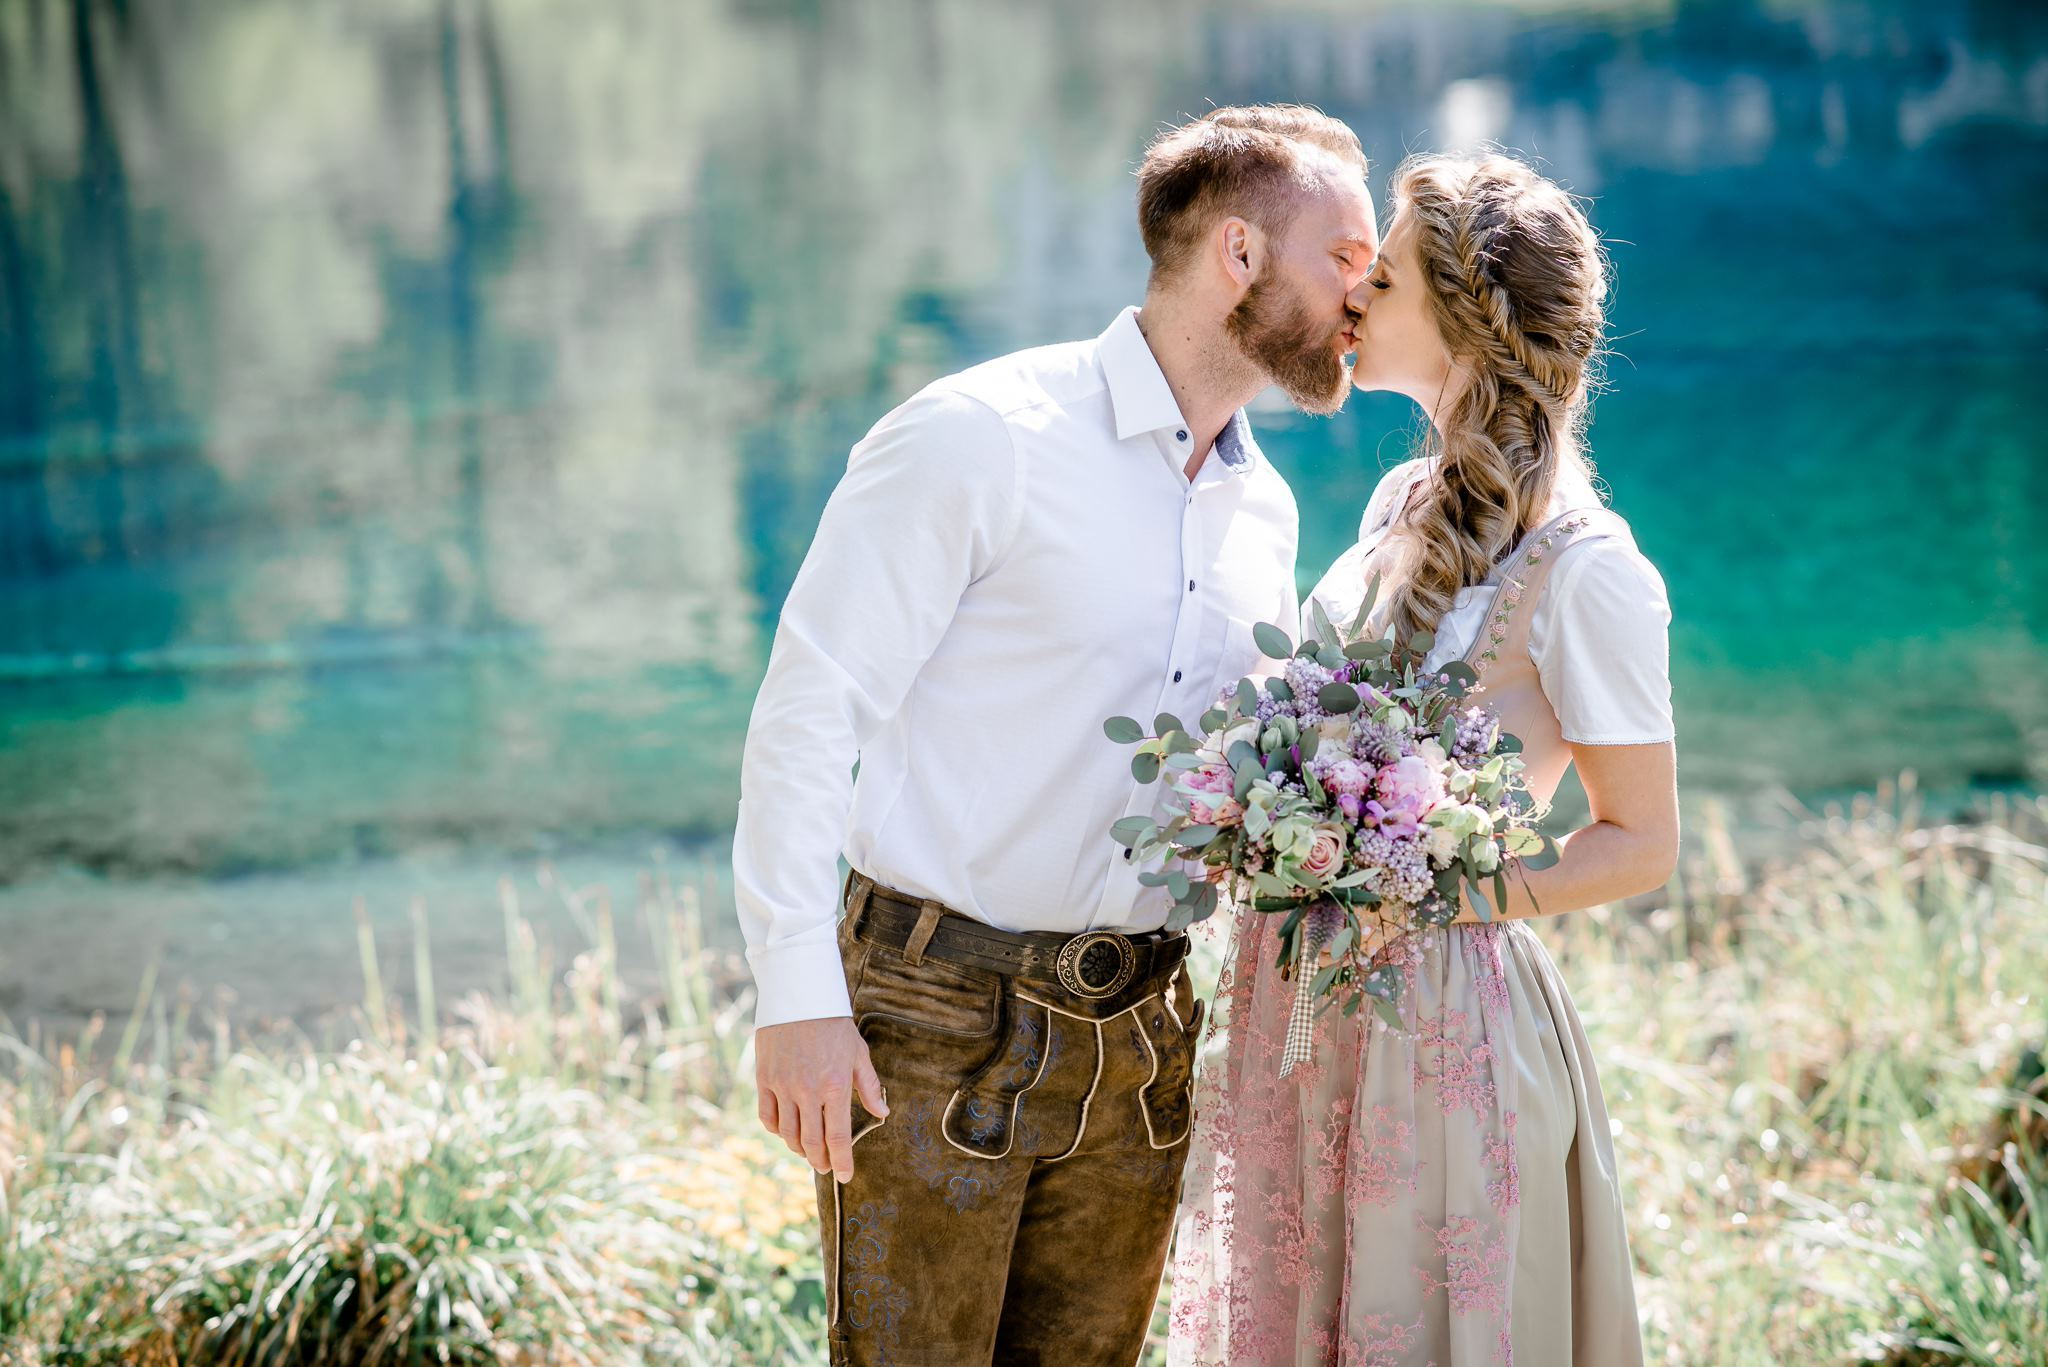 Heiraten in Tracht am Niederrhein